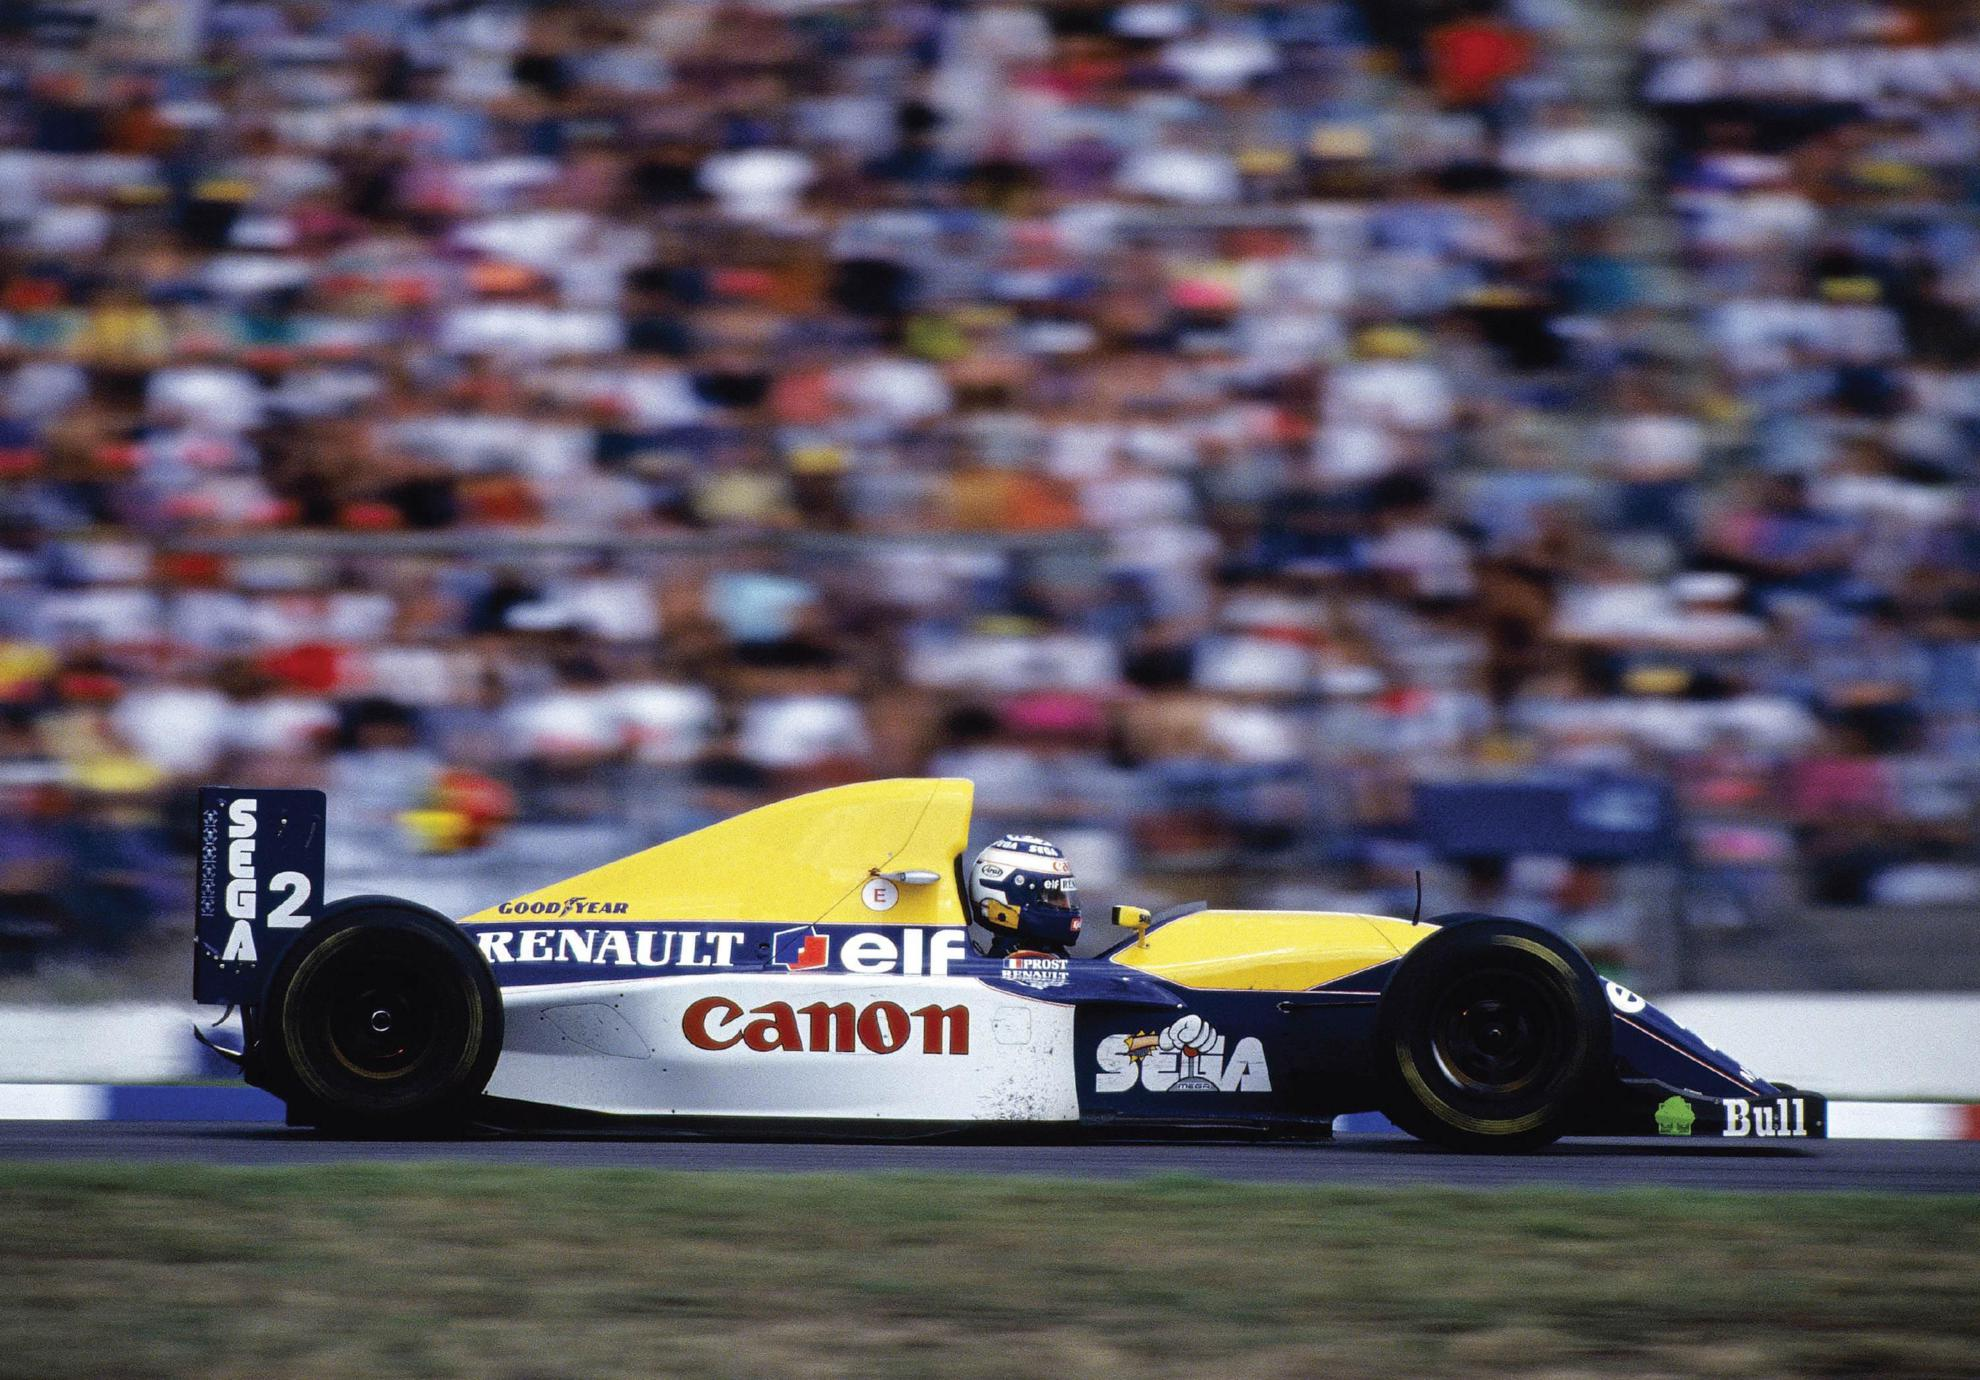 1993 Williams FW15C Alain Prost